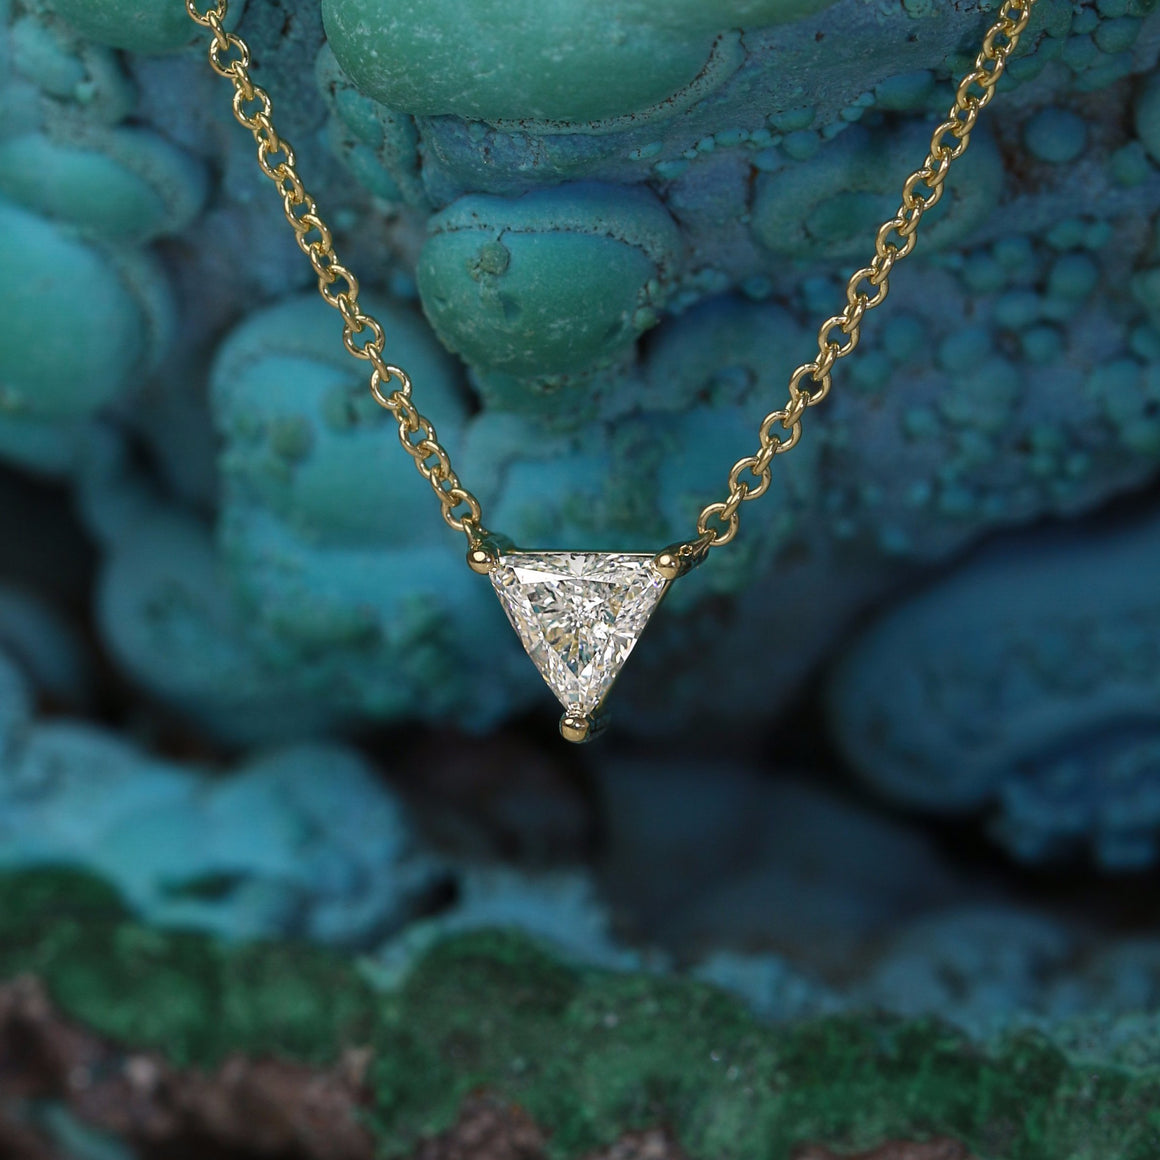 Triangular Diamond Solitaire Necklace in Yellow Gold - 0.36ct